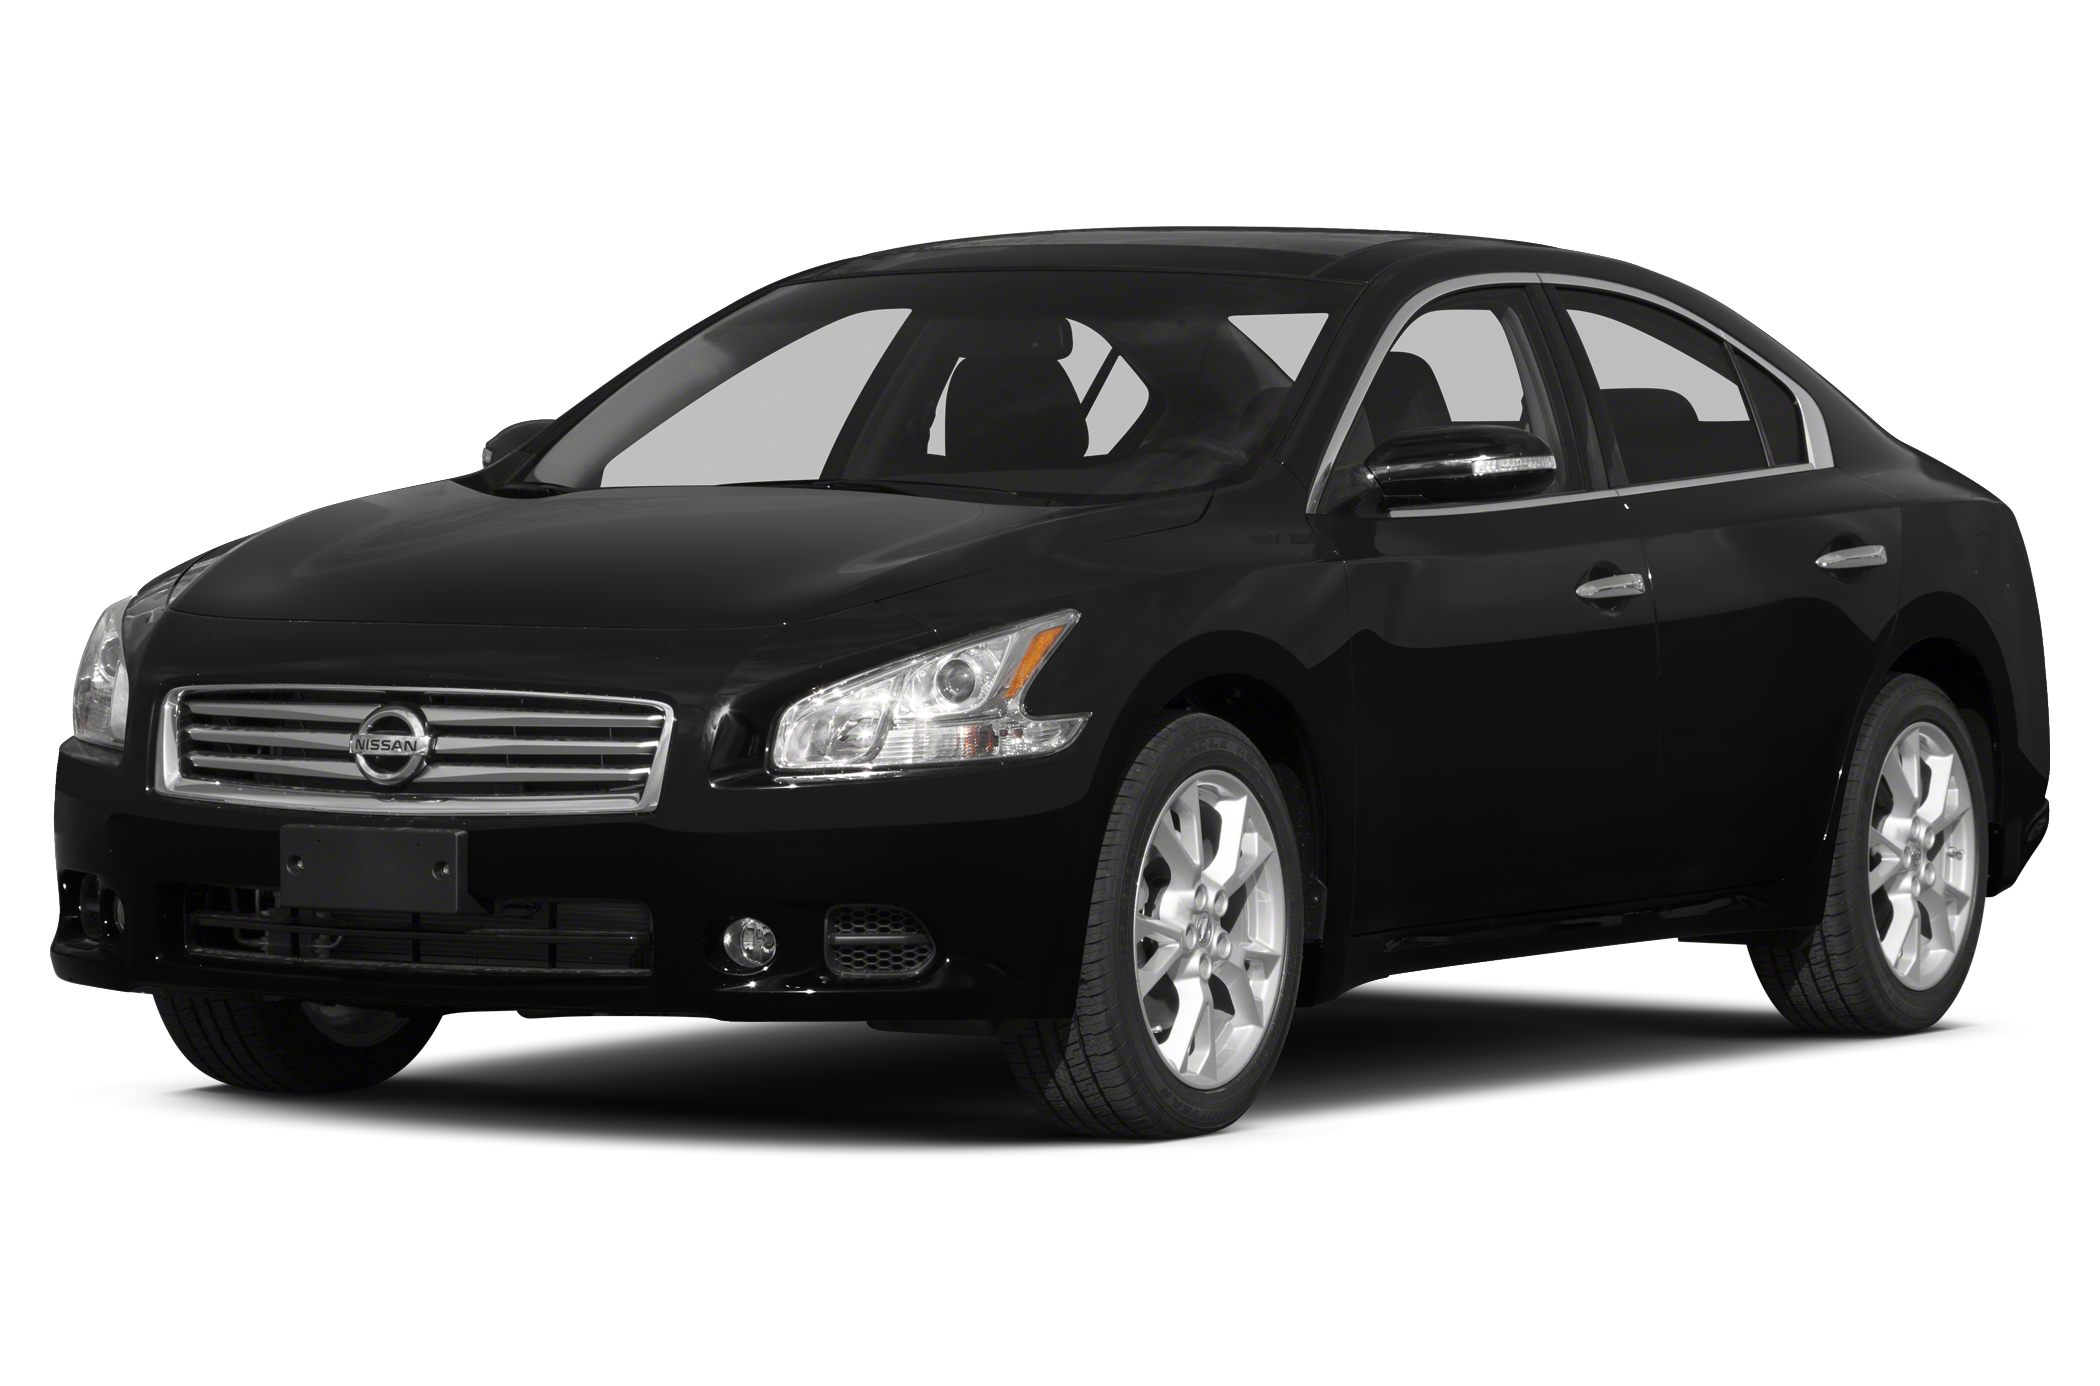 2014 Nissan Maxima SV Sedan for sale in Hattiesburg for $39,900 with 11 miles